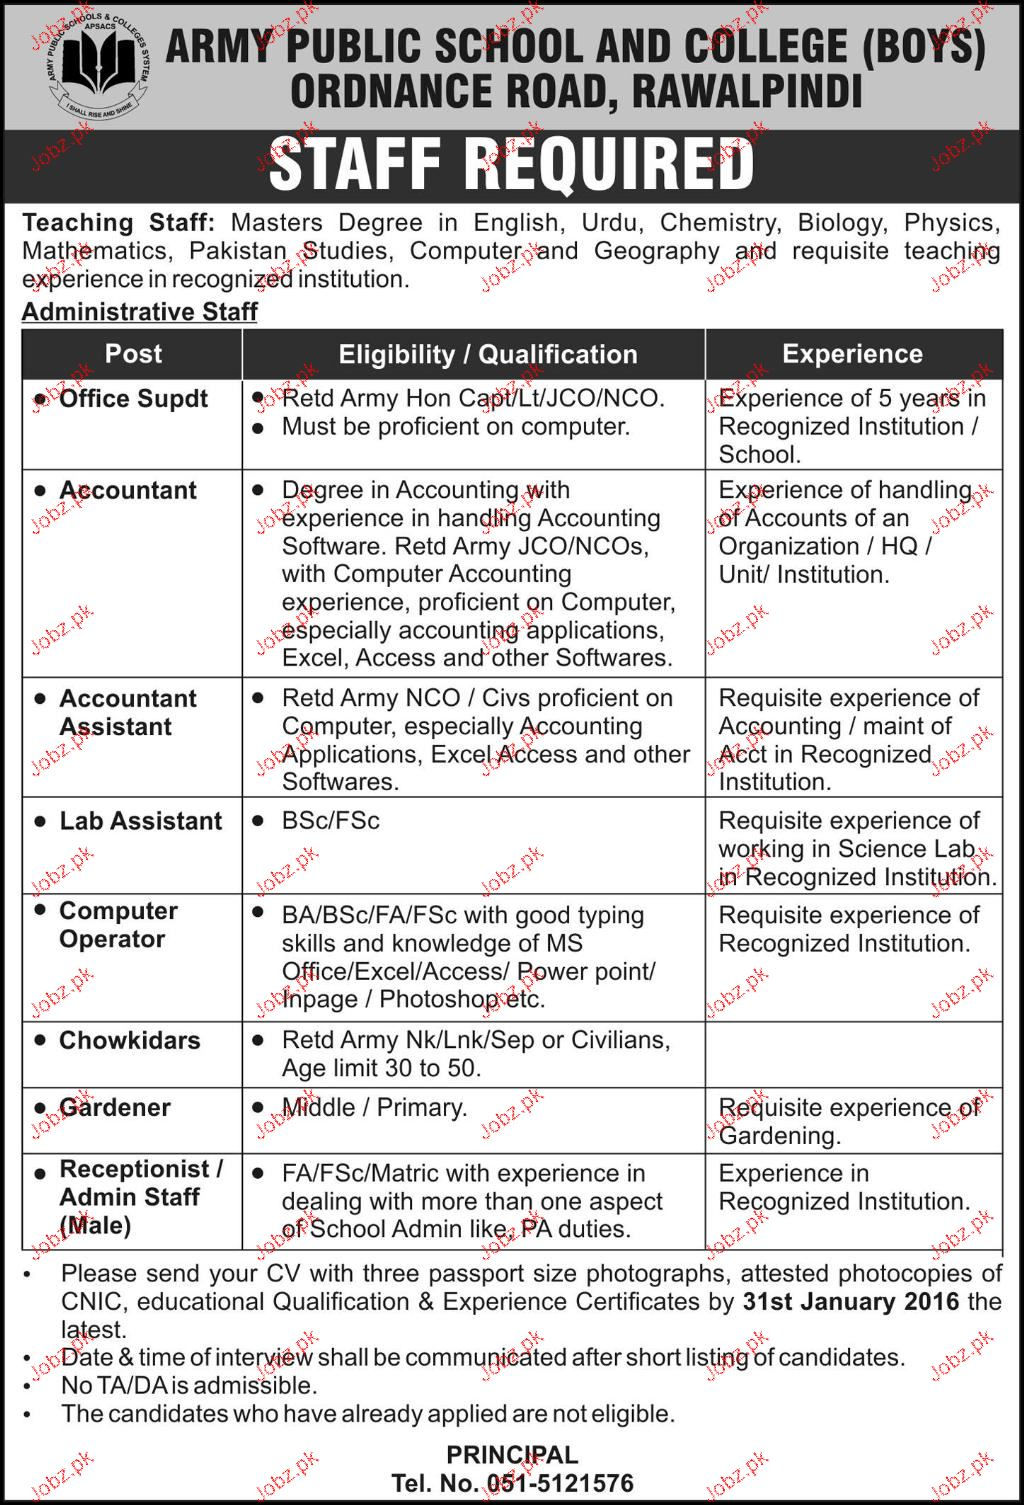 office superintendent accountant job in aps jobs office superintendent accountant job in aps